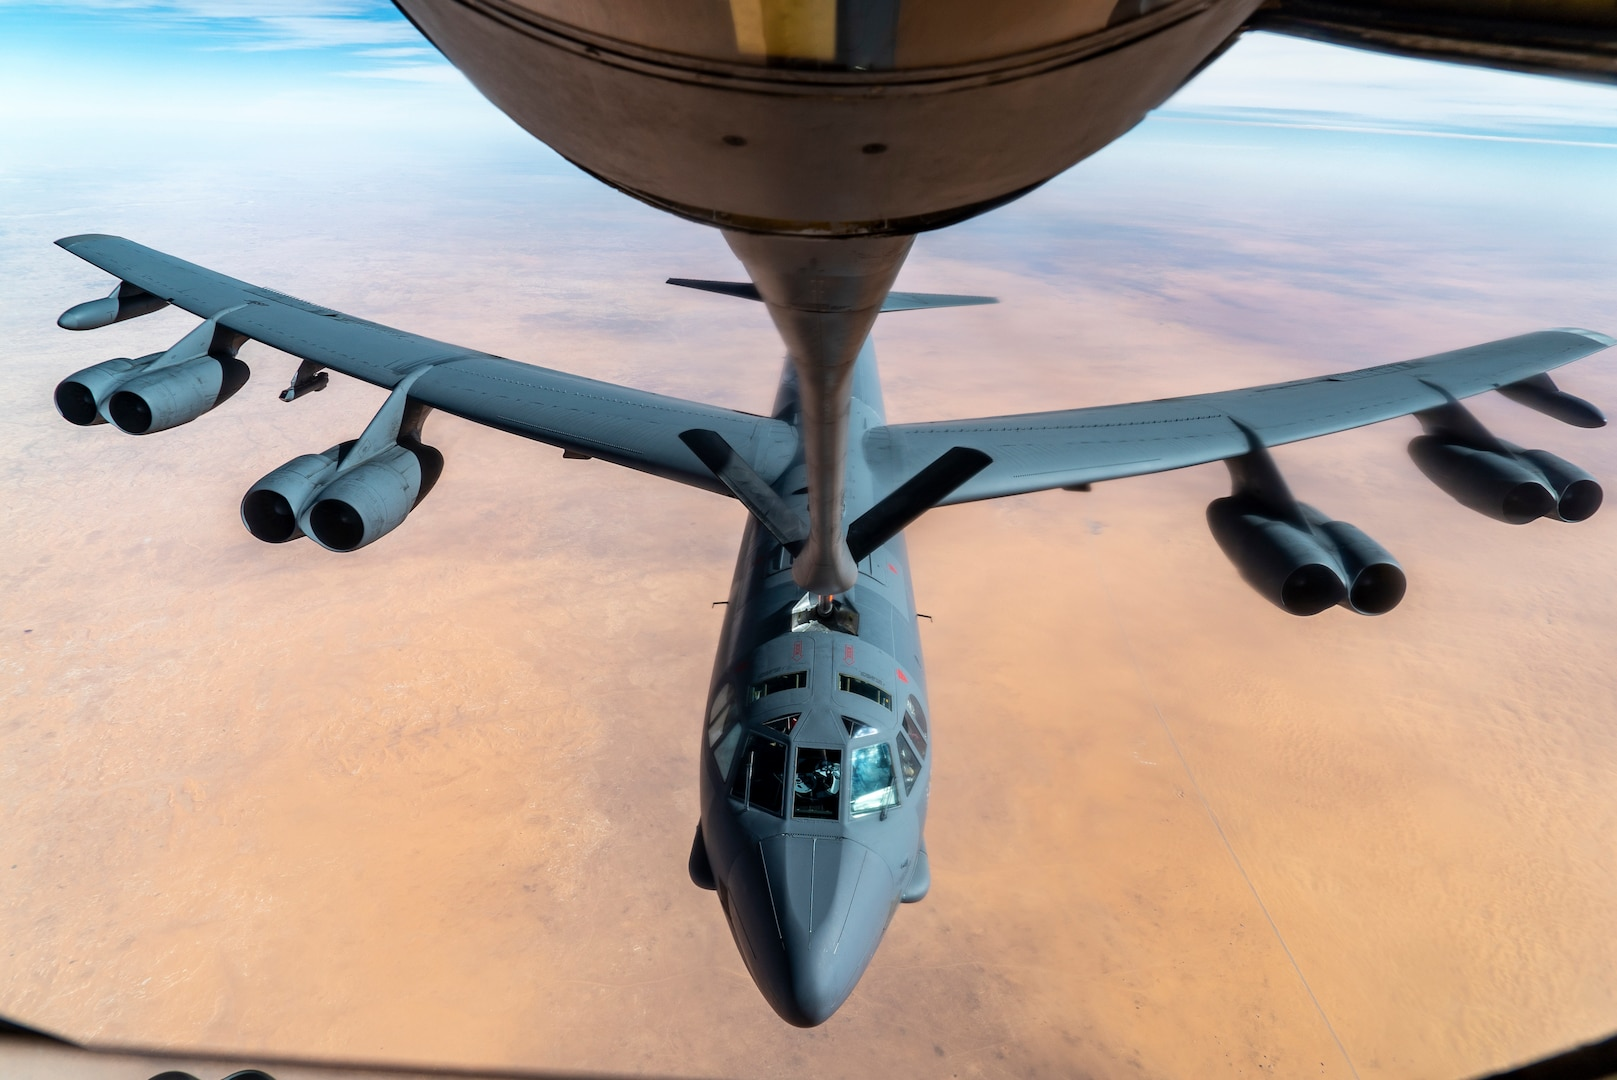 A refueling line extends to a bomber for mid-air refueling.